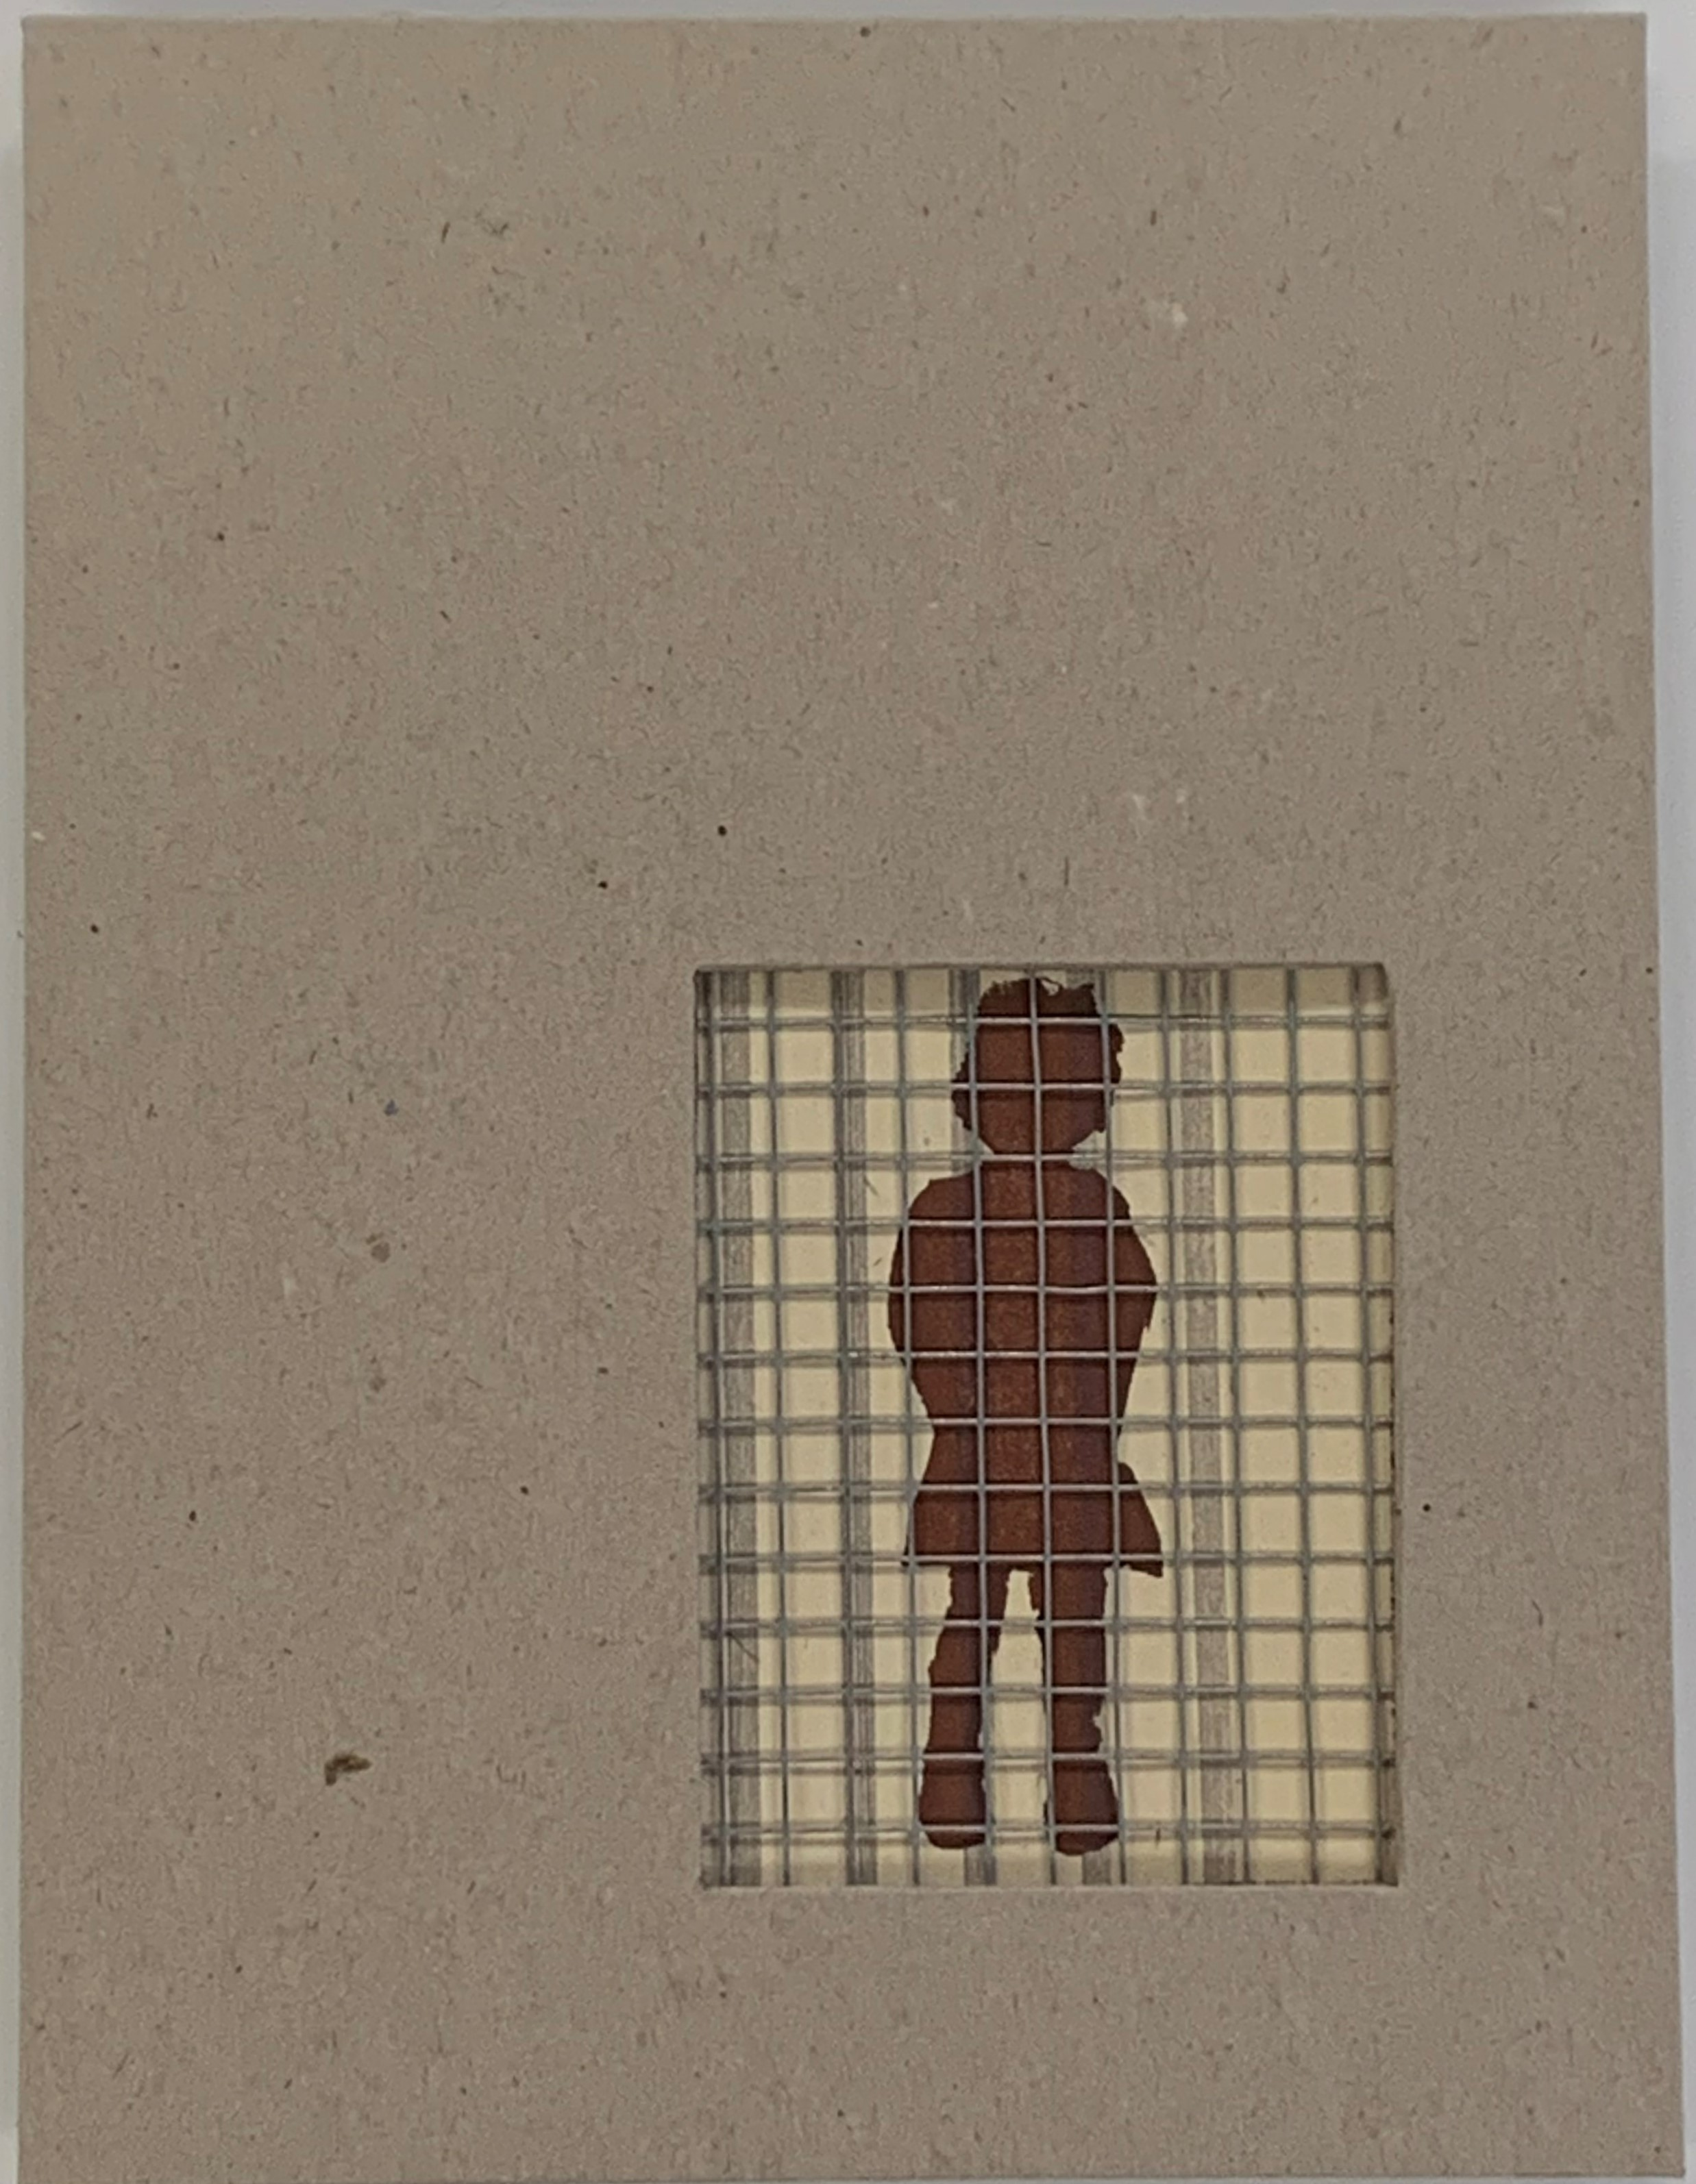 tan book cover with a rectangle cut out of the lower right corner; within the cutout is section of metal fencing with the burnt umber silhouette of a small girl